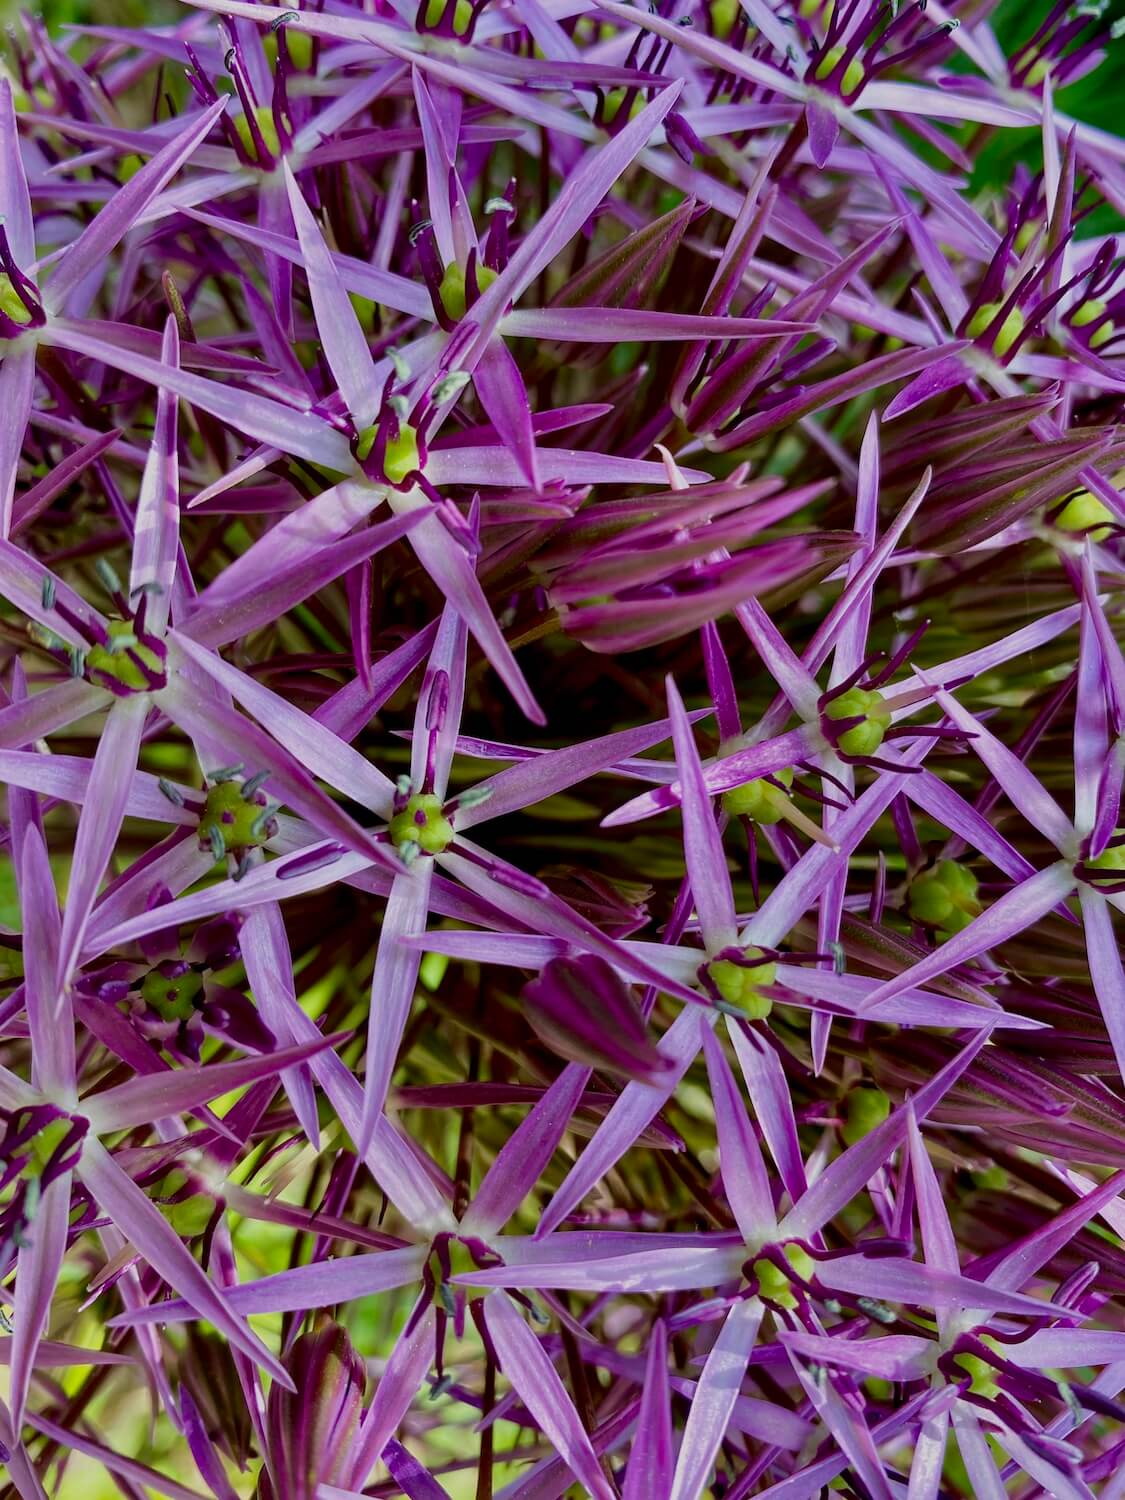 A grouping of purple flowers cling together in the Point Defiance Botanical Garden.